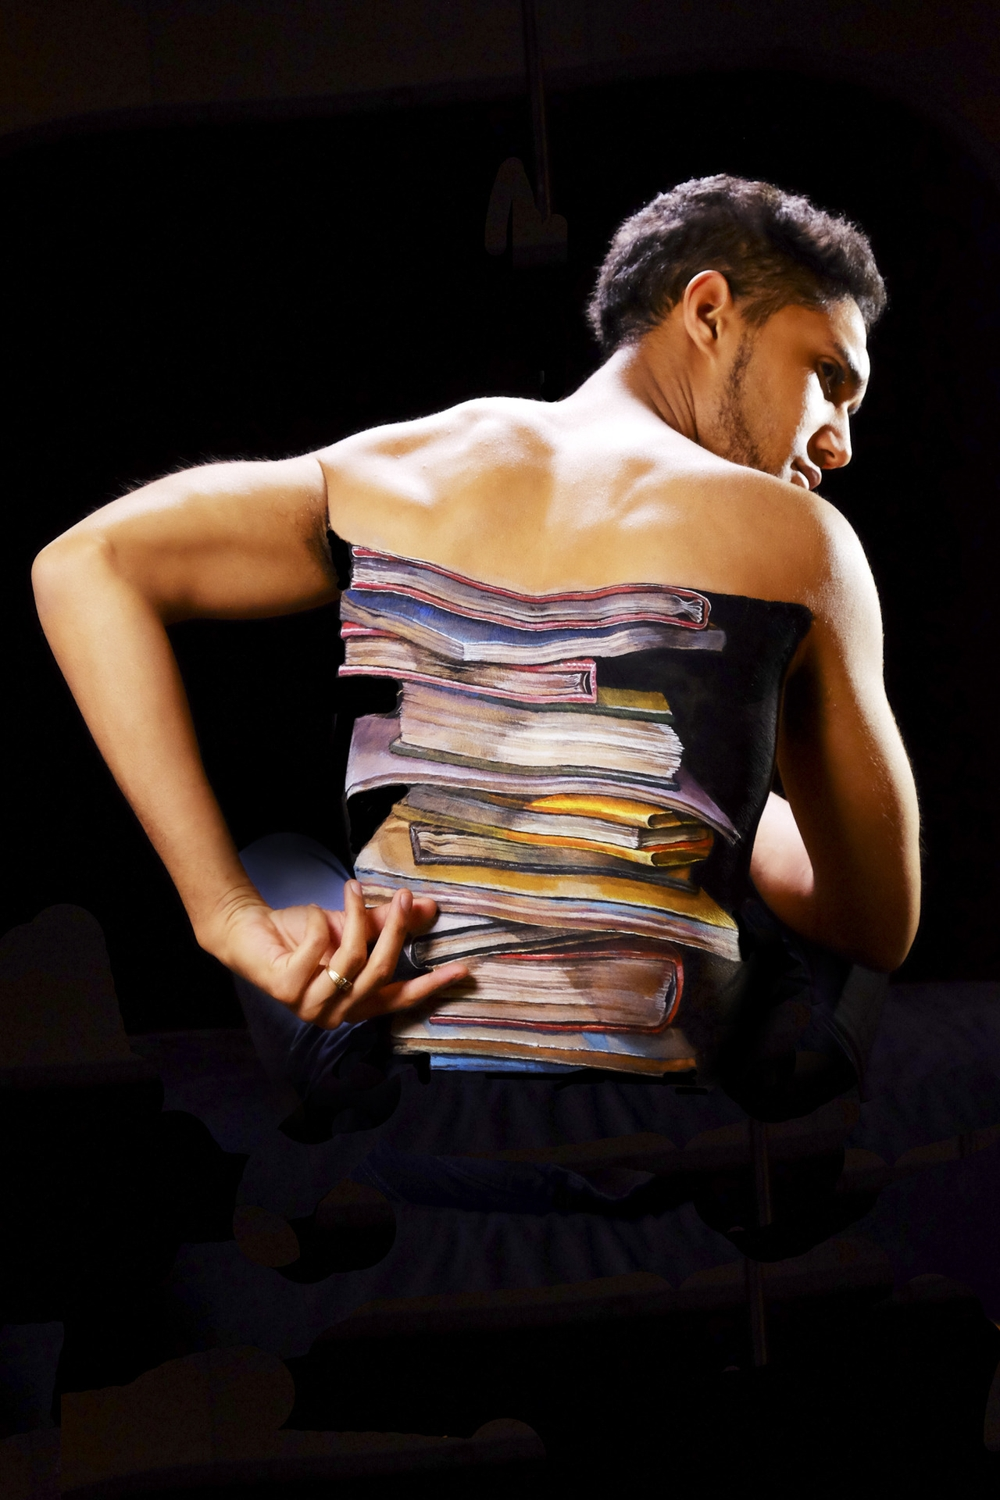 14-My-Body-My-Rights-Hikaru-Cho-チョーヒカル-Body-Painting-Her-way-Through-University-www-designstack-co